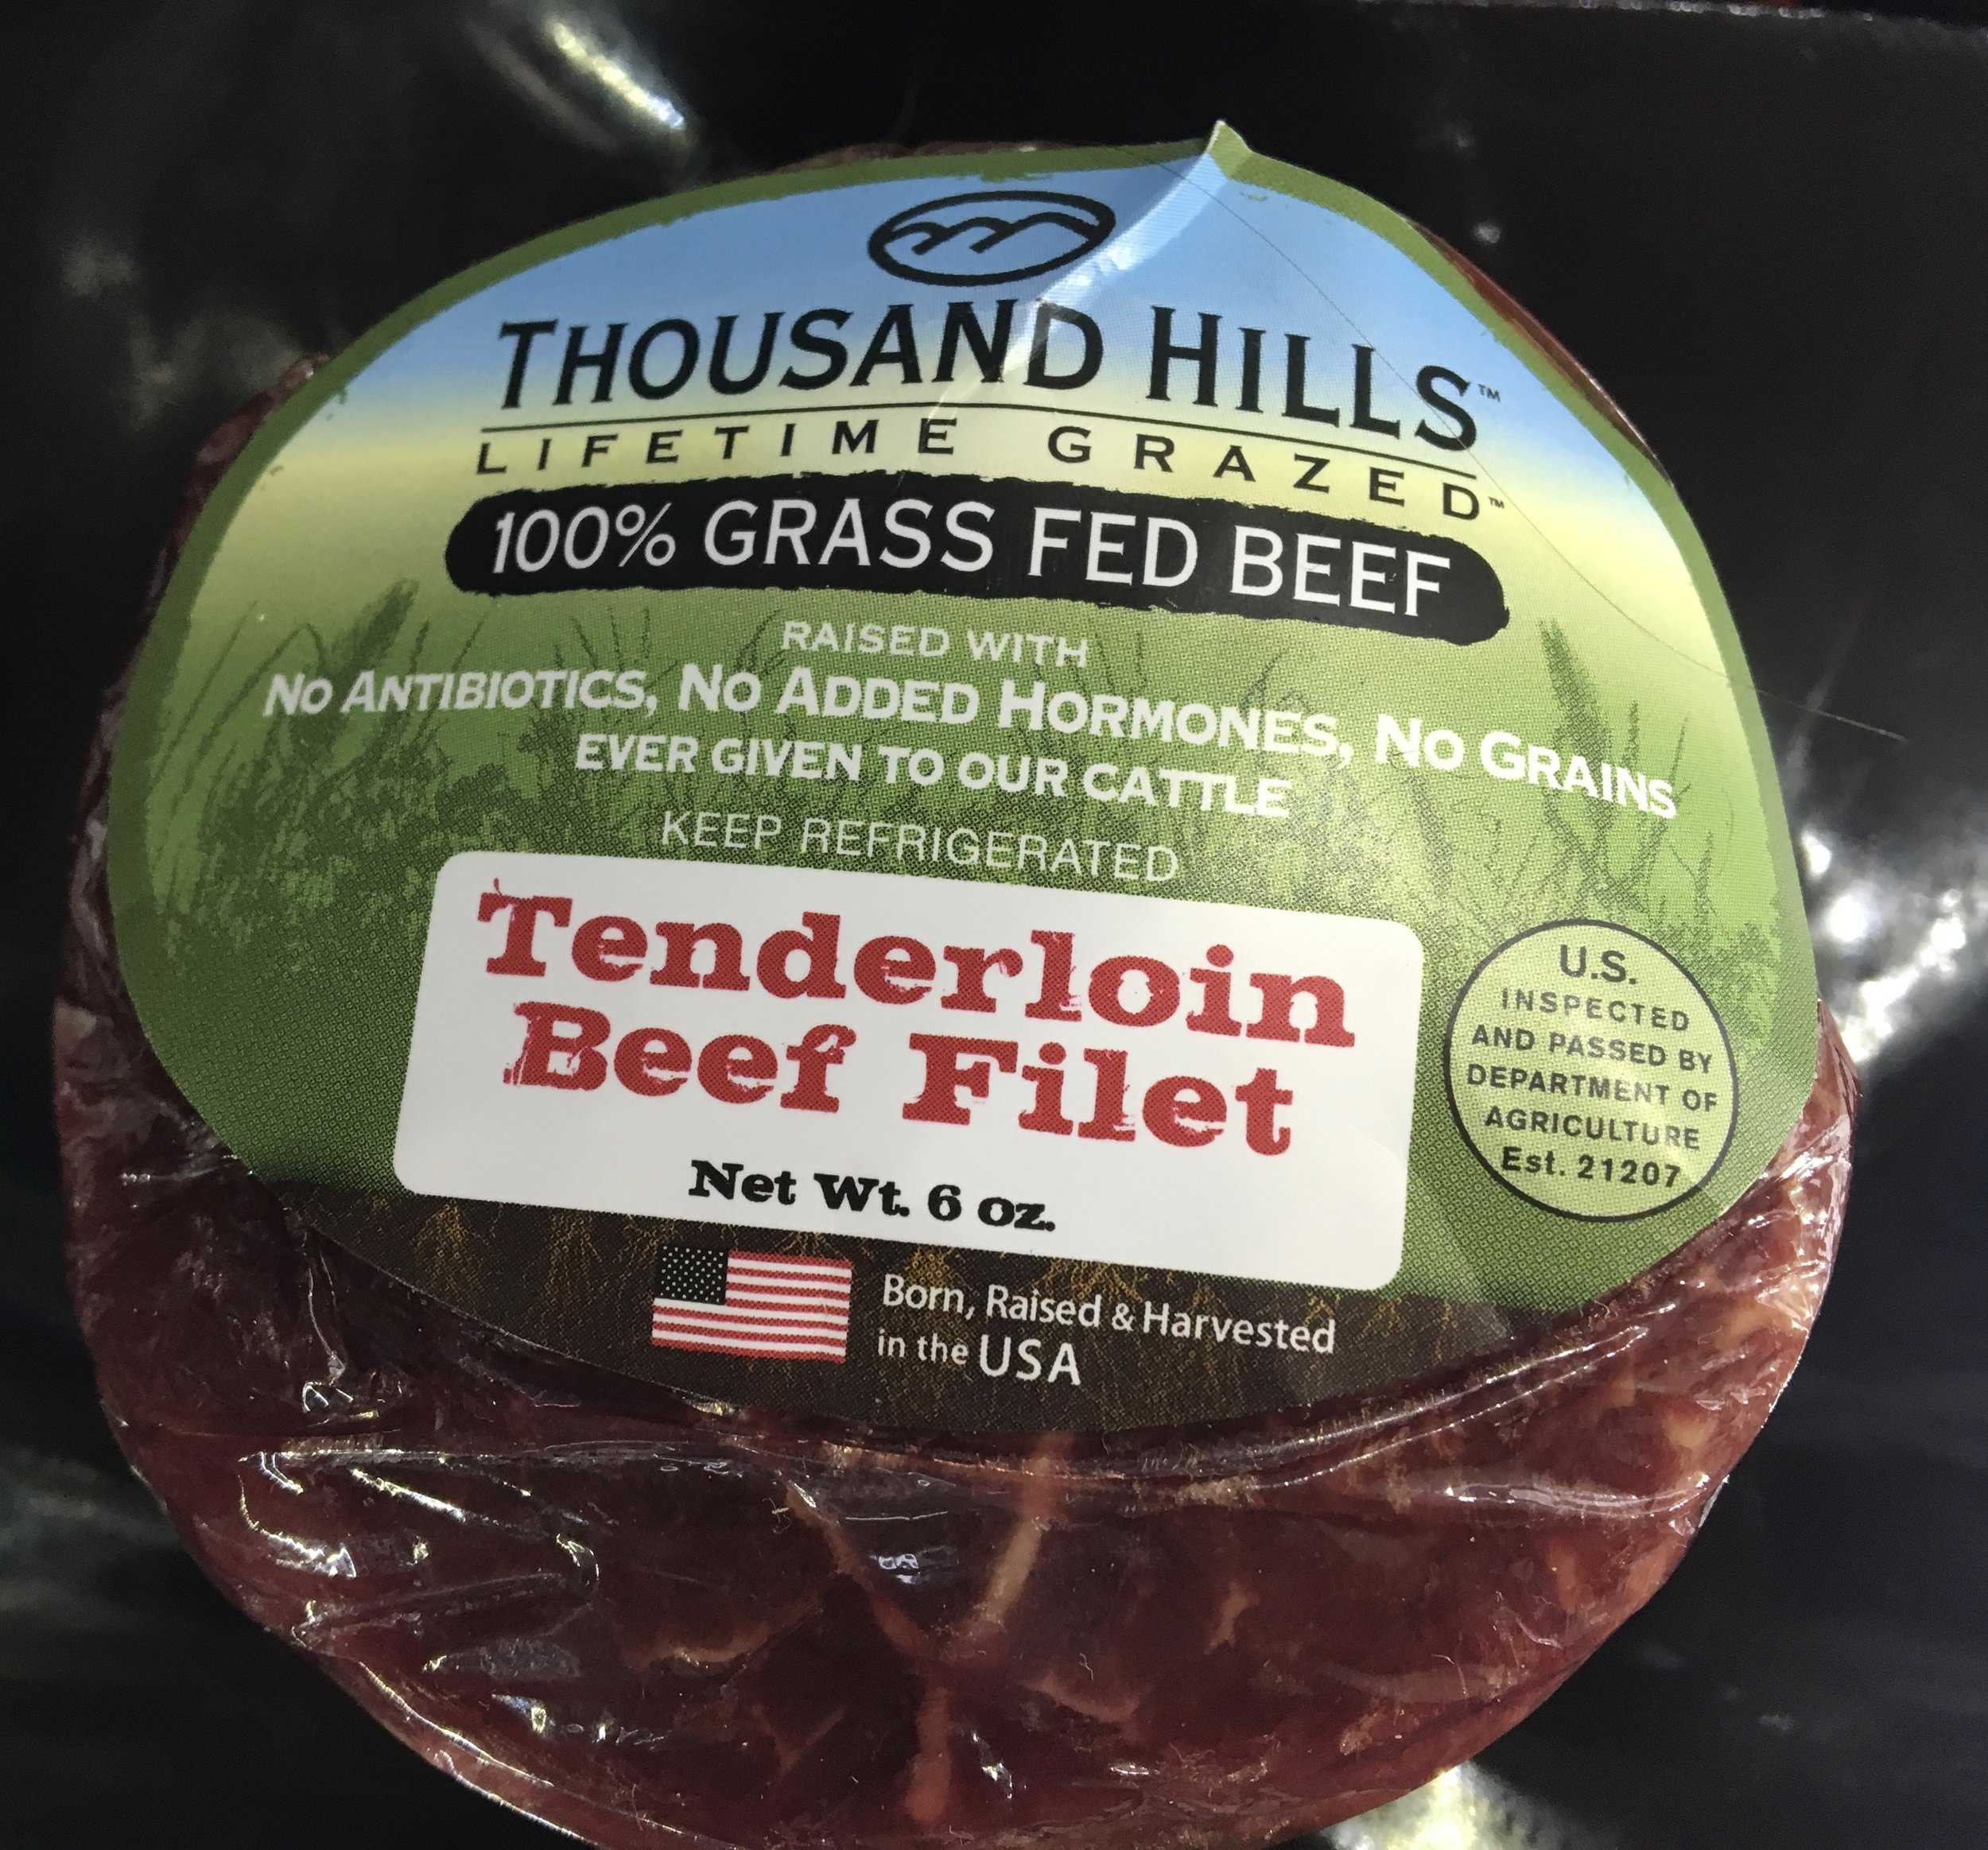 Thousand hills 100% grass fed steaks and ground